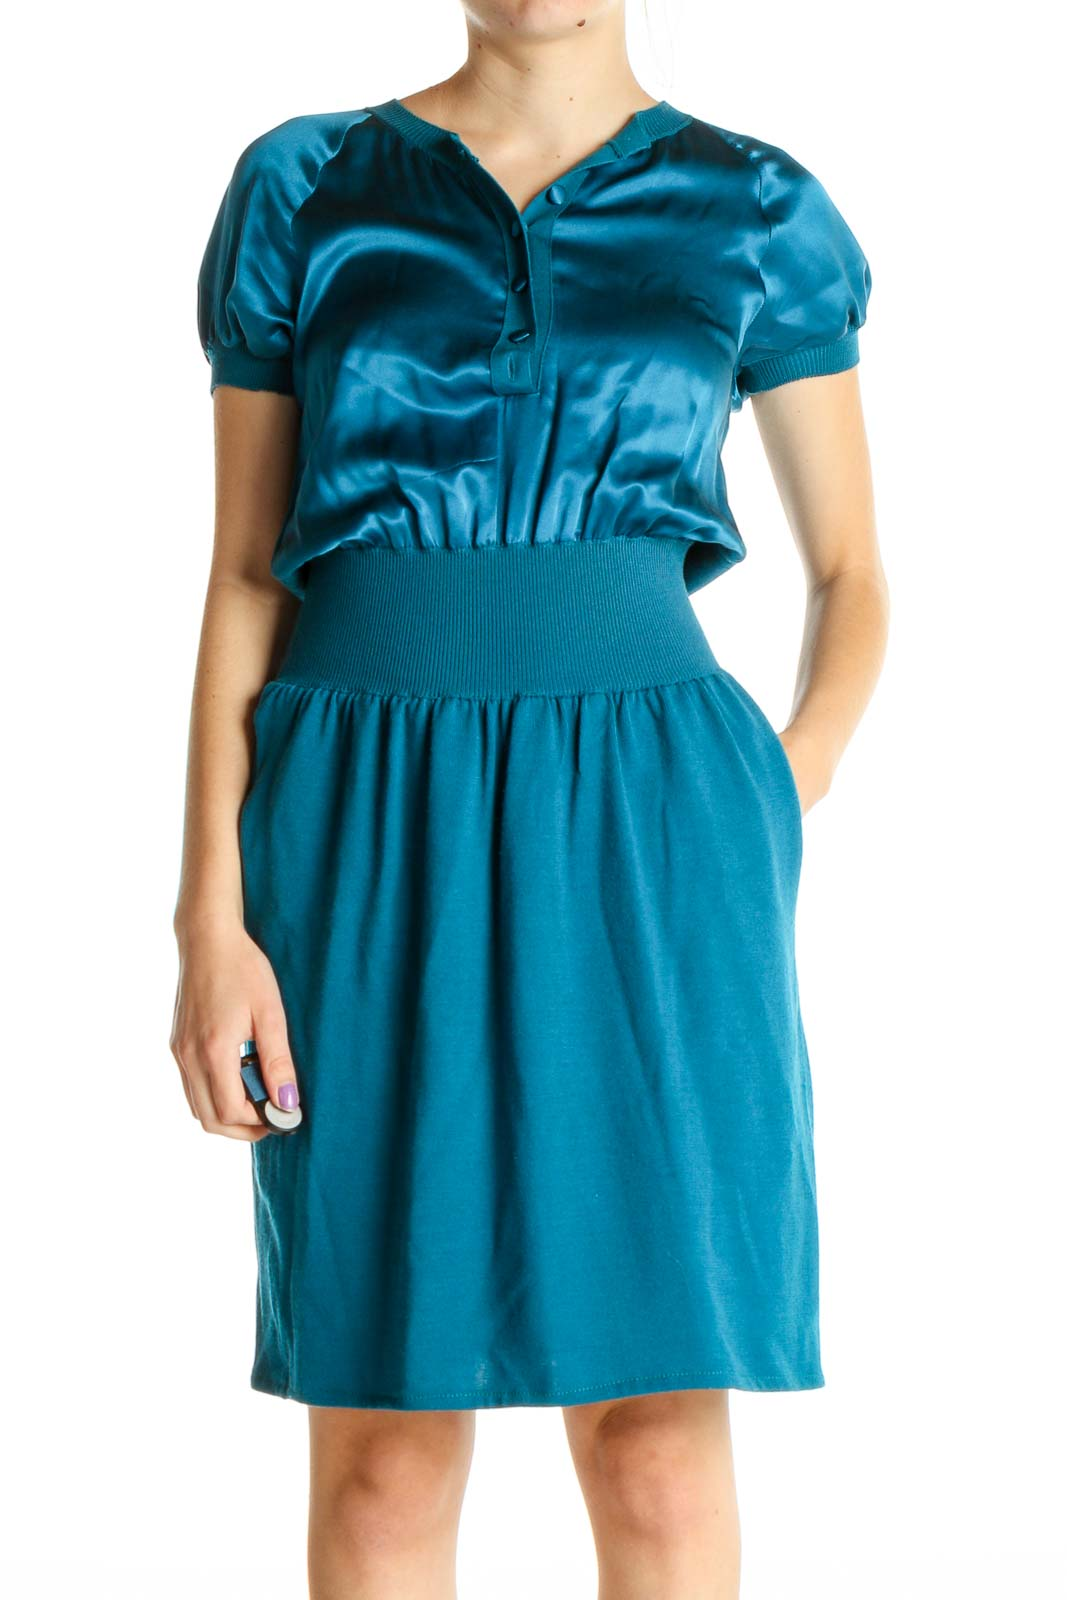 Blue Solid Retro Fit & Flare Dress Front